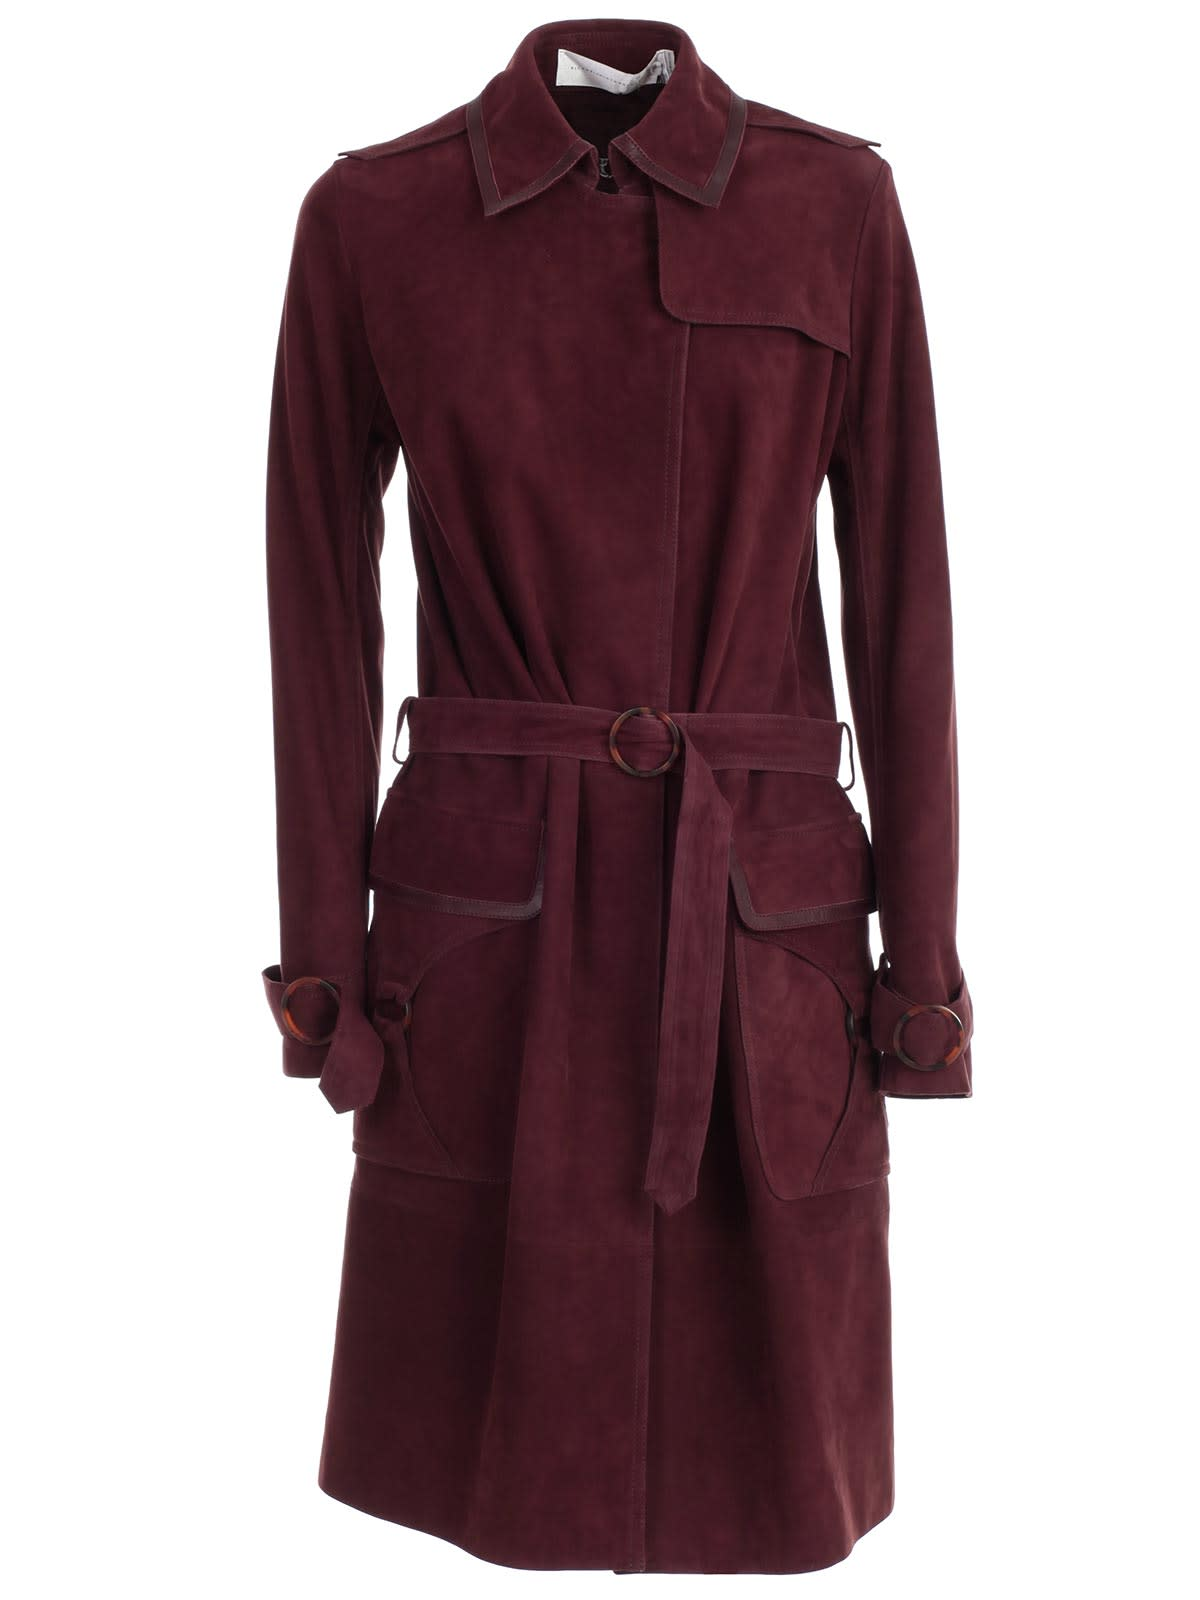 Photo of  Victoria Victoria Beckham Trench Suede- shop Victoria Victoria Beckham jackets online sales